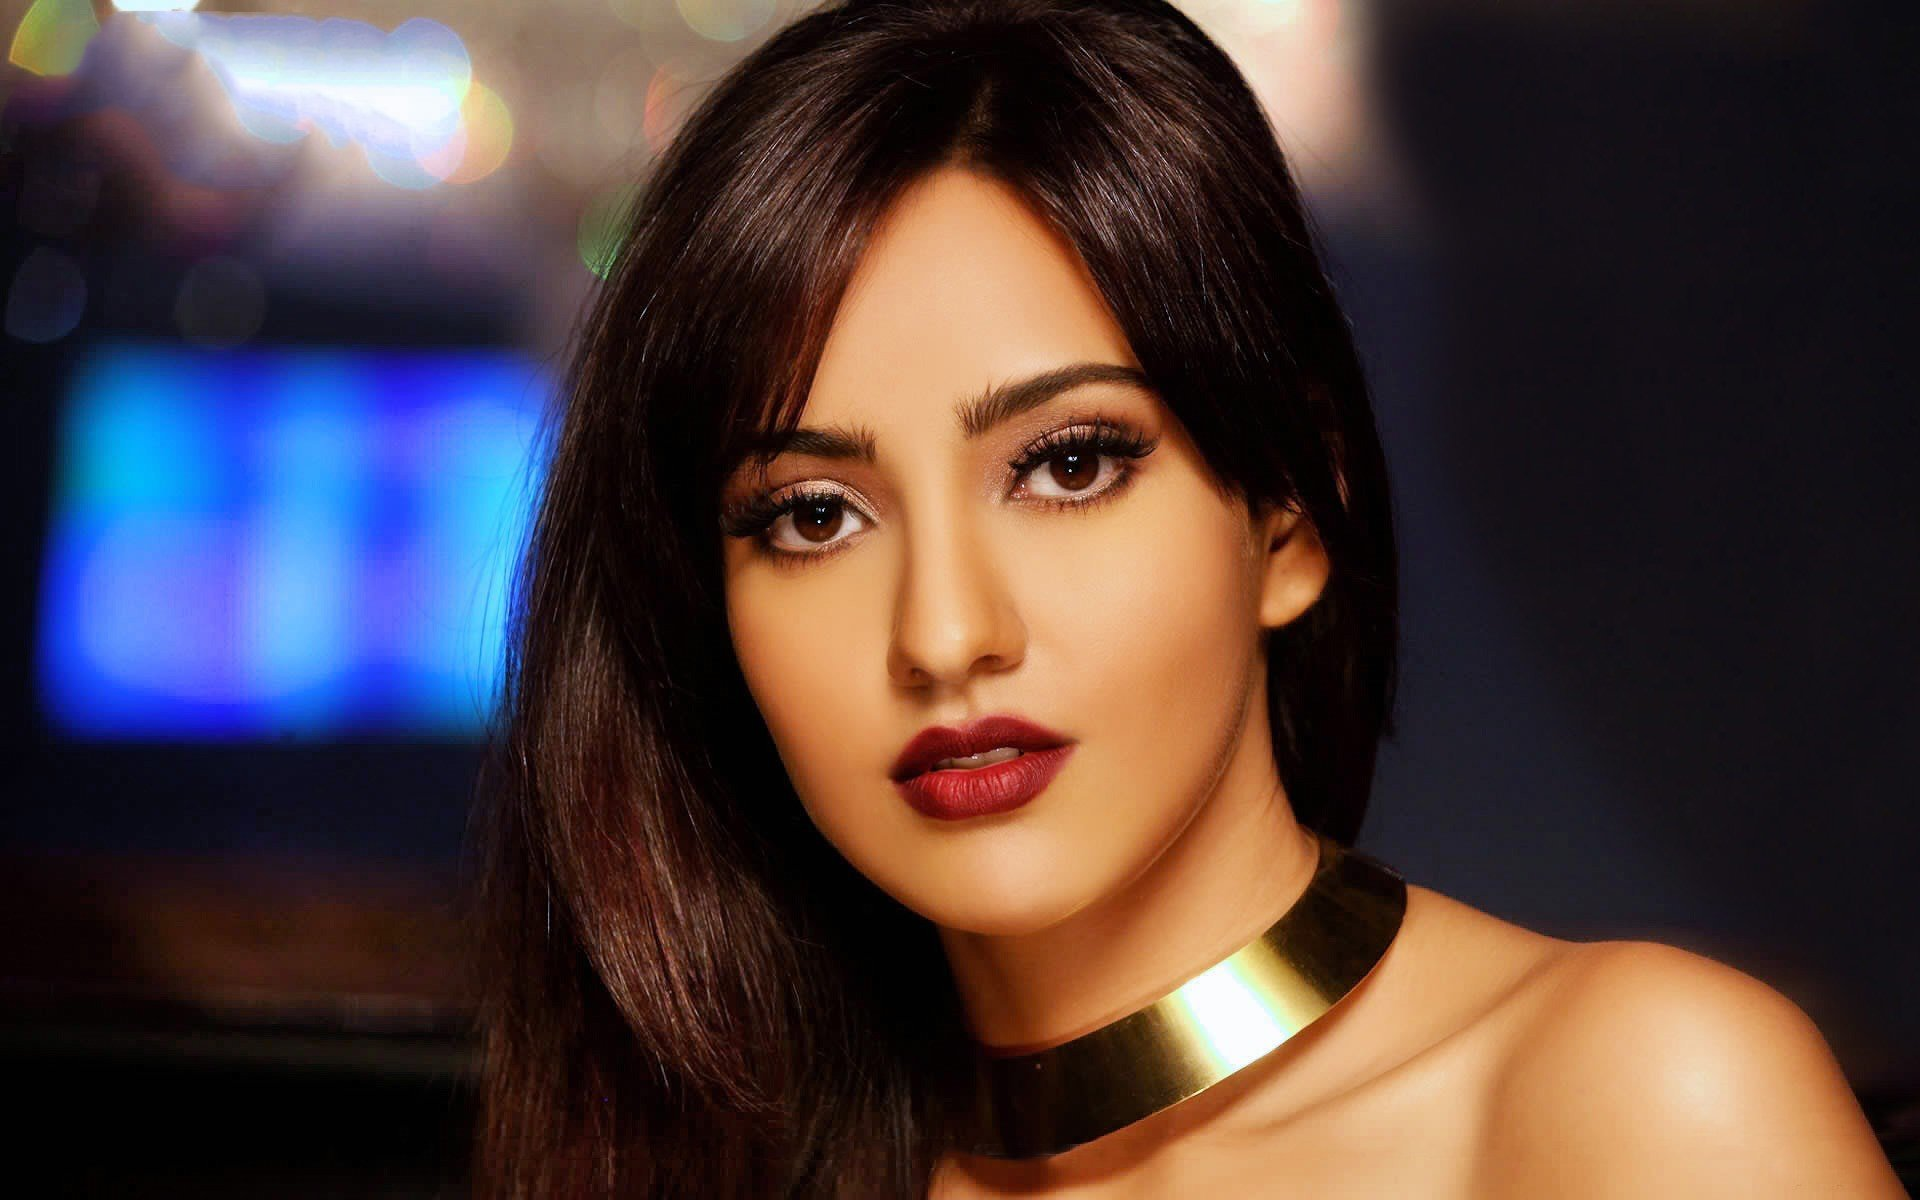 Neha Sharma HD wallpaper for download